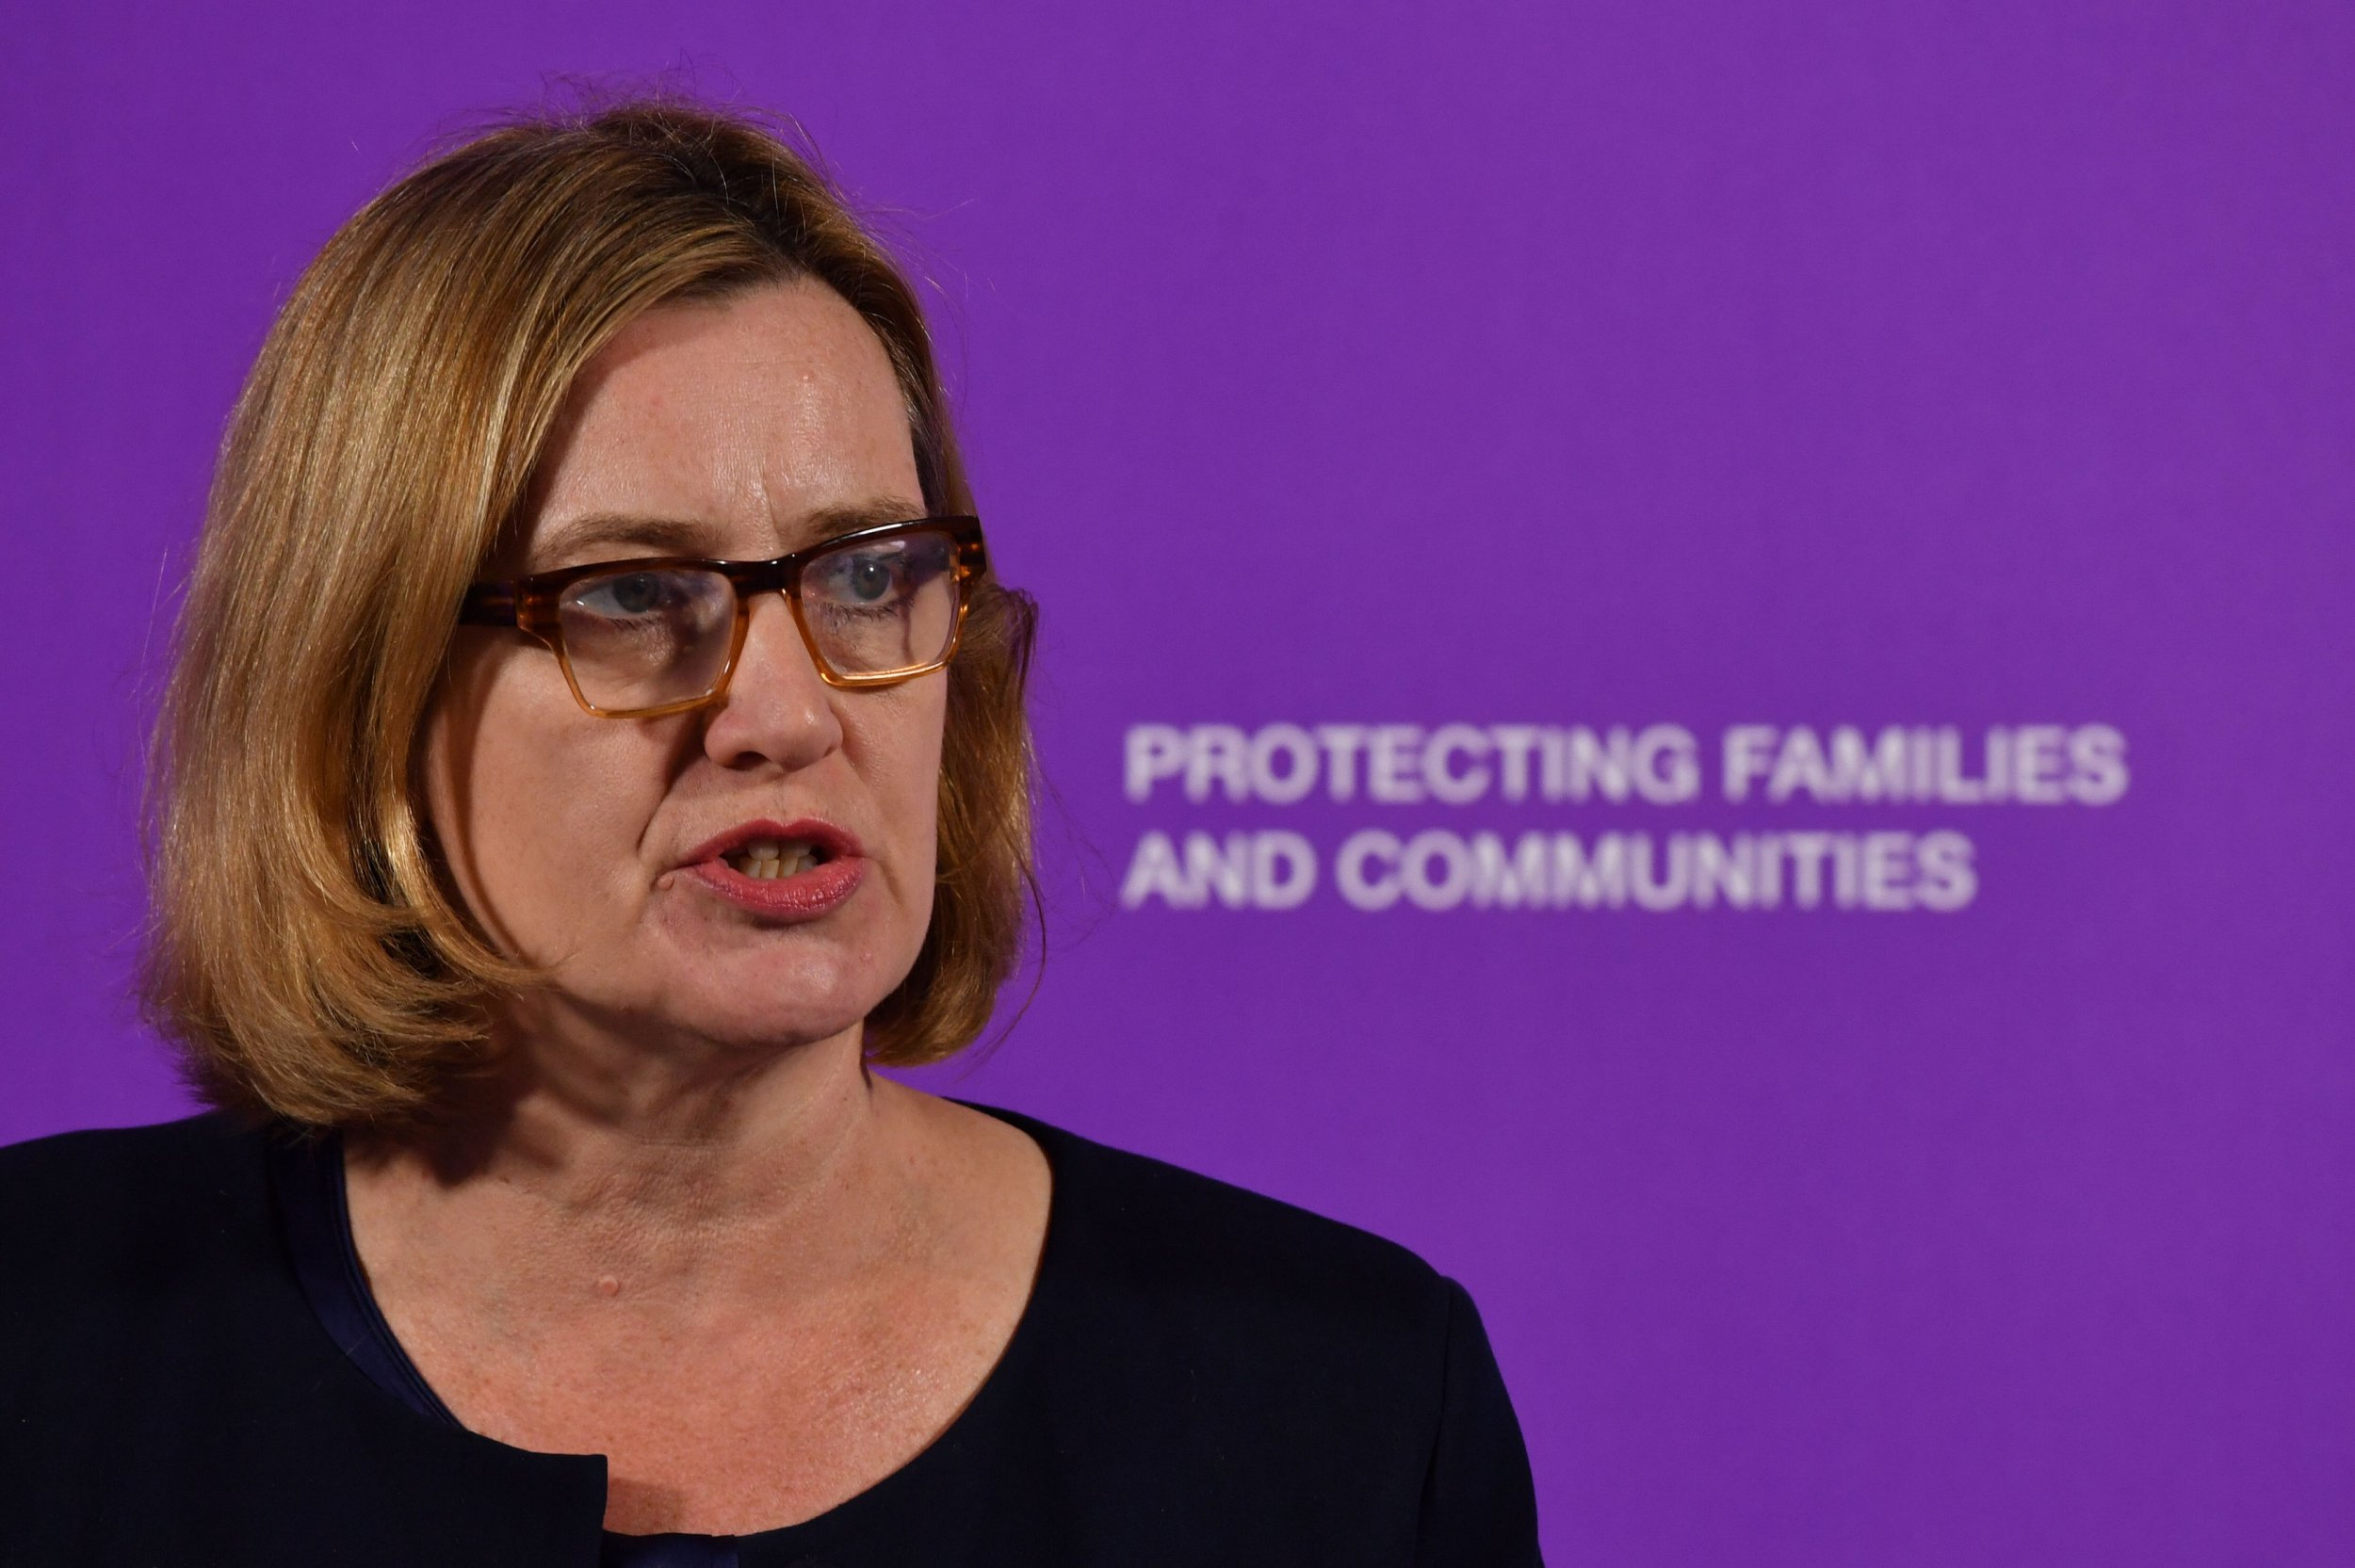 Home Secretary Amber Rudd speaking about violent crime at the Coin St Neighbourhood Centre in London. PRESS ASSOCIATION Photo. Picture date: Monday April 9, 2018. Amber Rudd will commit to doing ?whatever it takes? to make Britain?s streets safe as she launches a blitz on violent crime. See PA story POLITICS Violence. Photo credit should read: John Stillwell/PA Wire